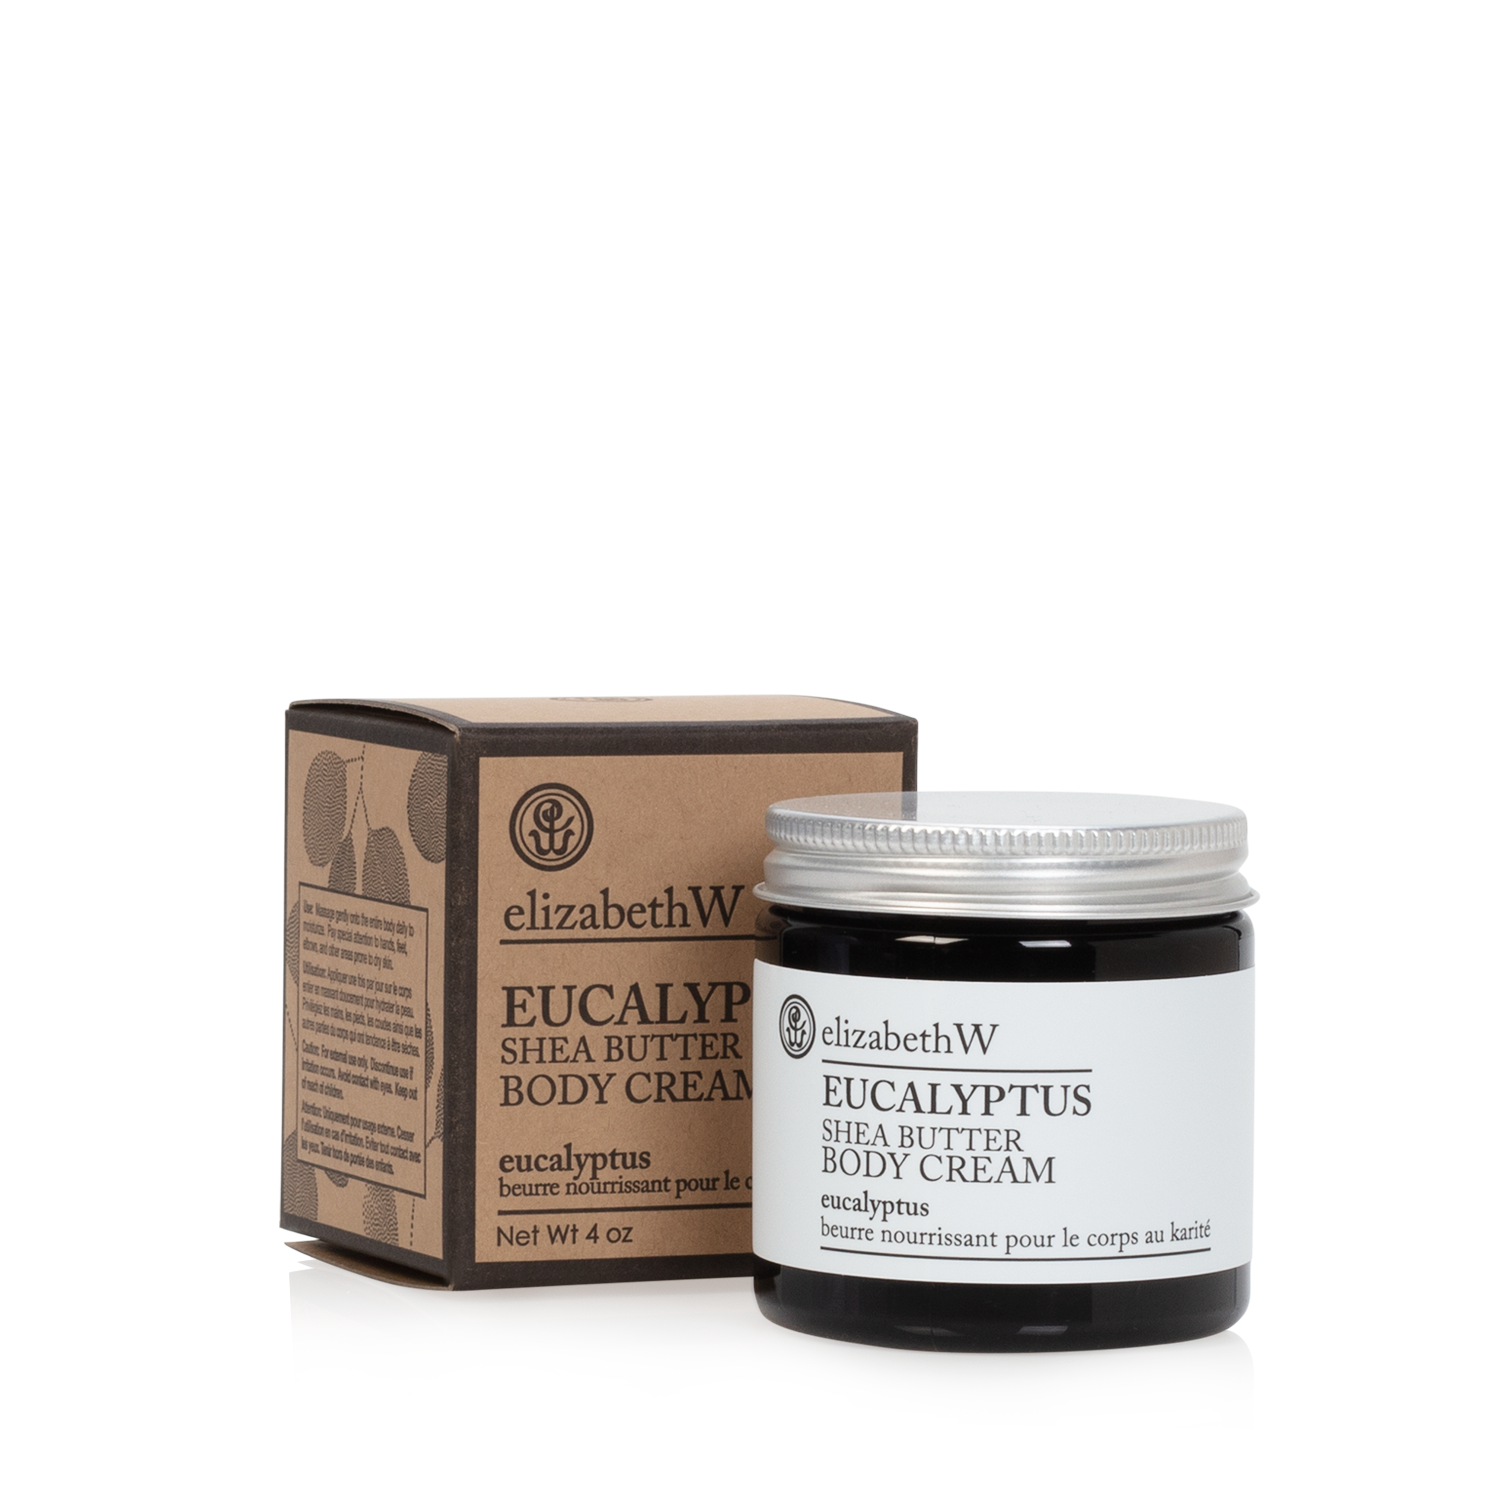 Eucalyptus Body Cream